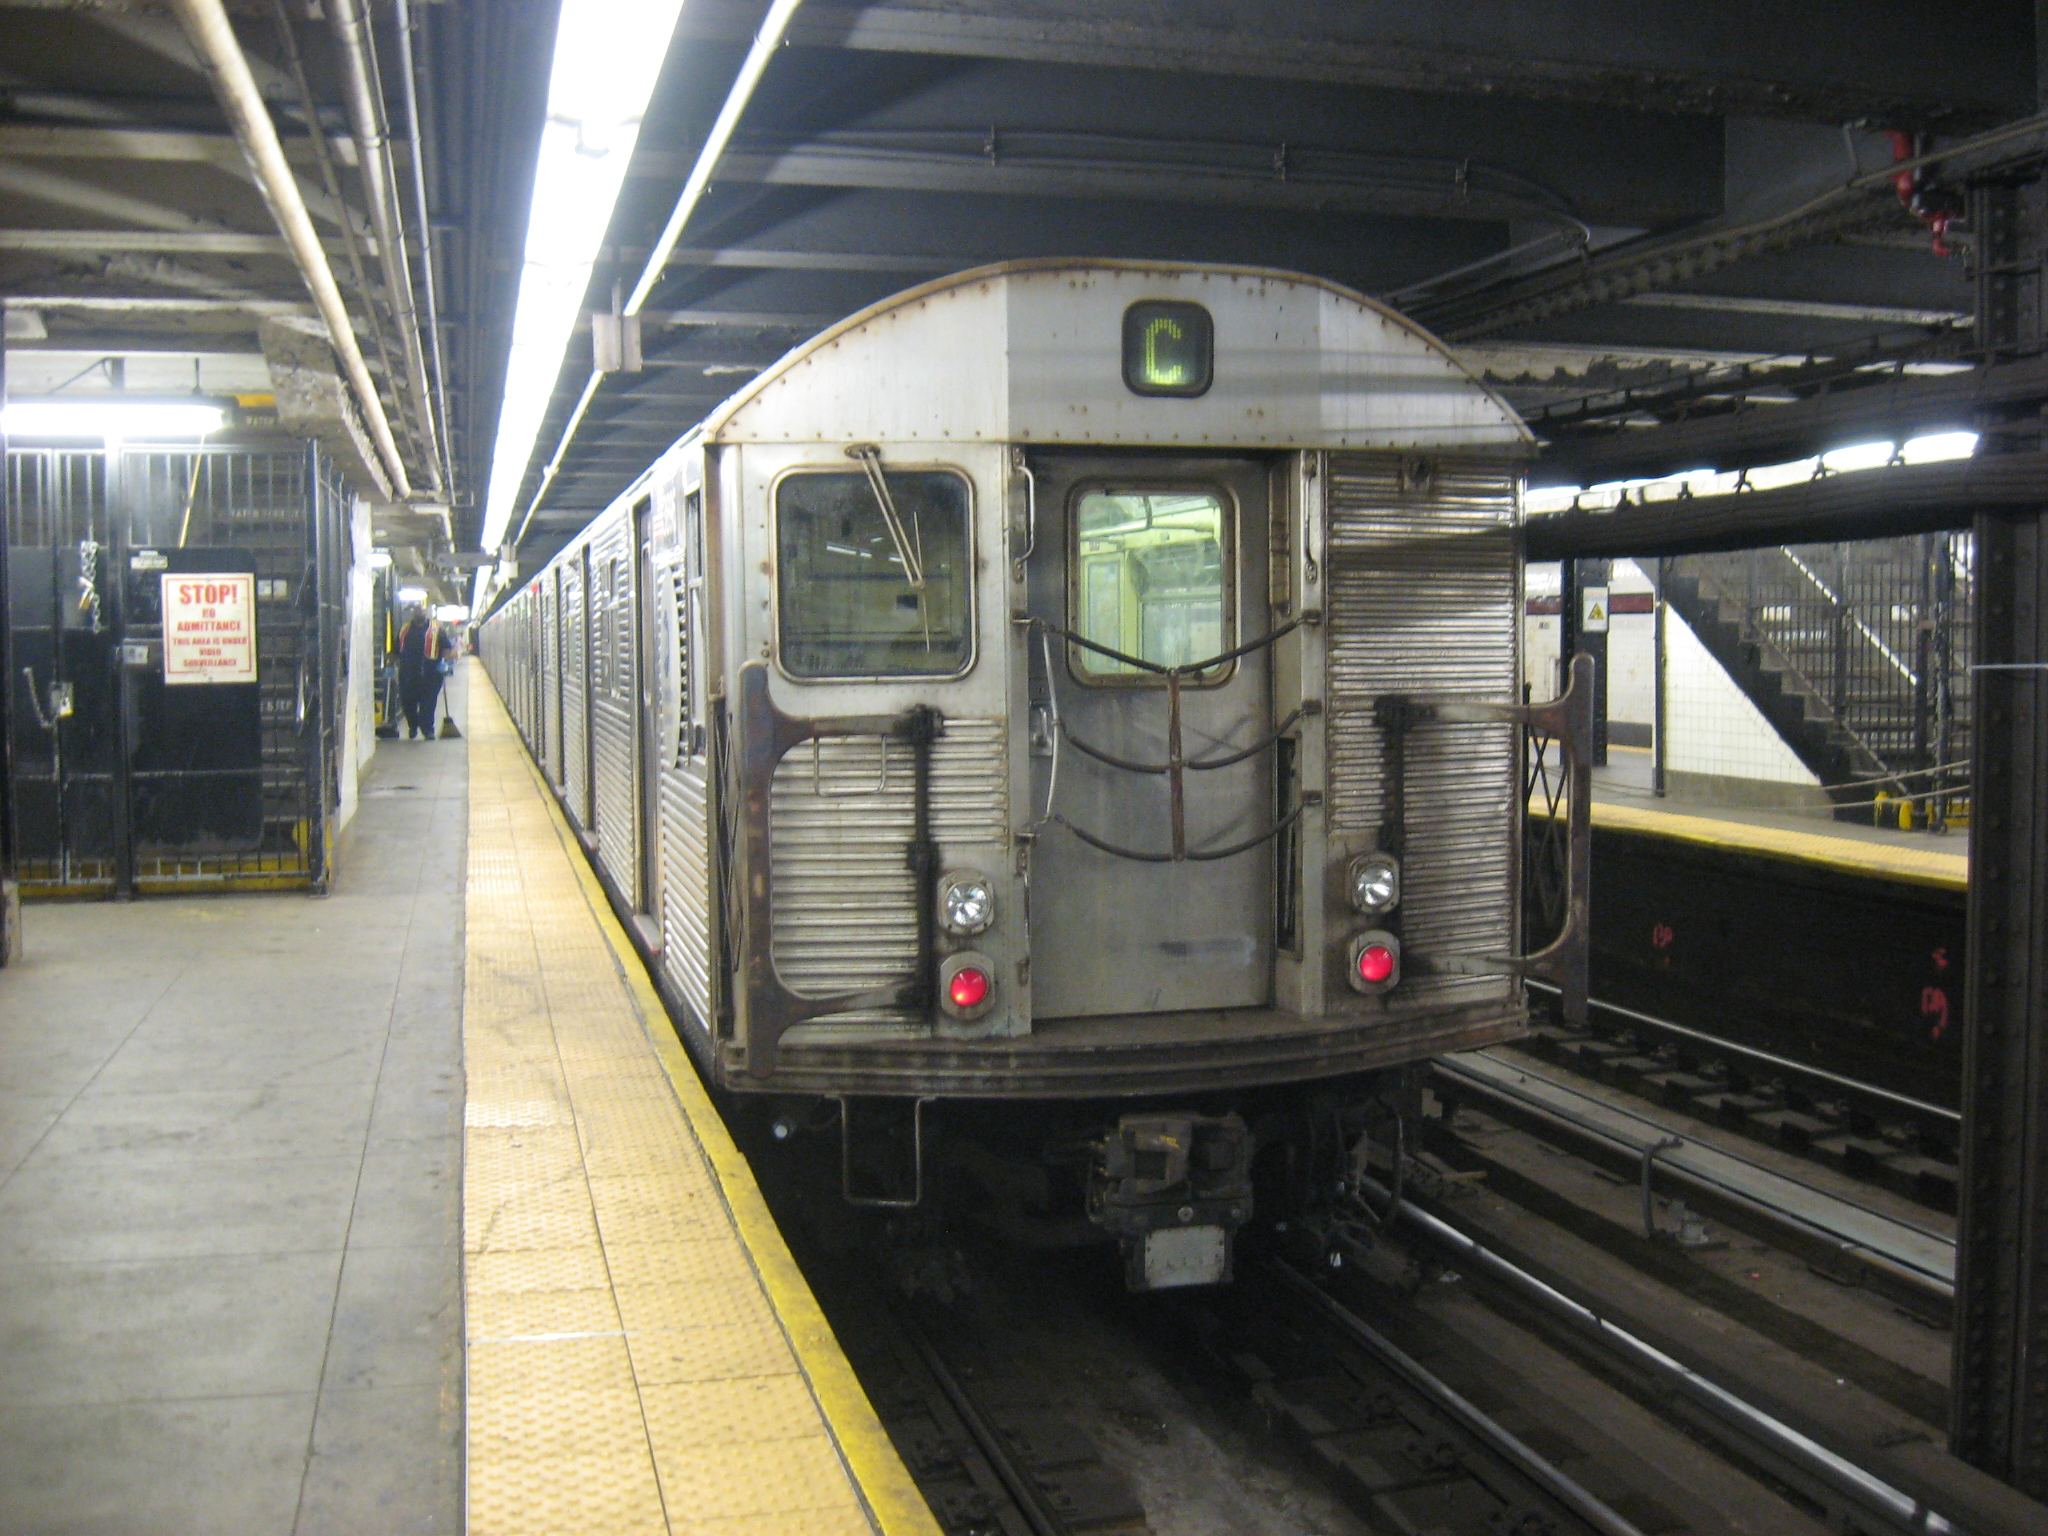 R32_C_Train_at_168th_street.JPG